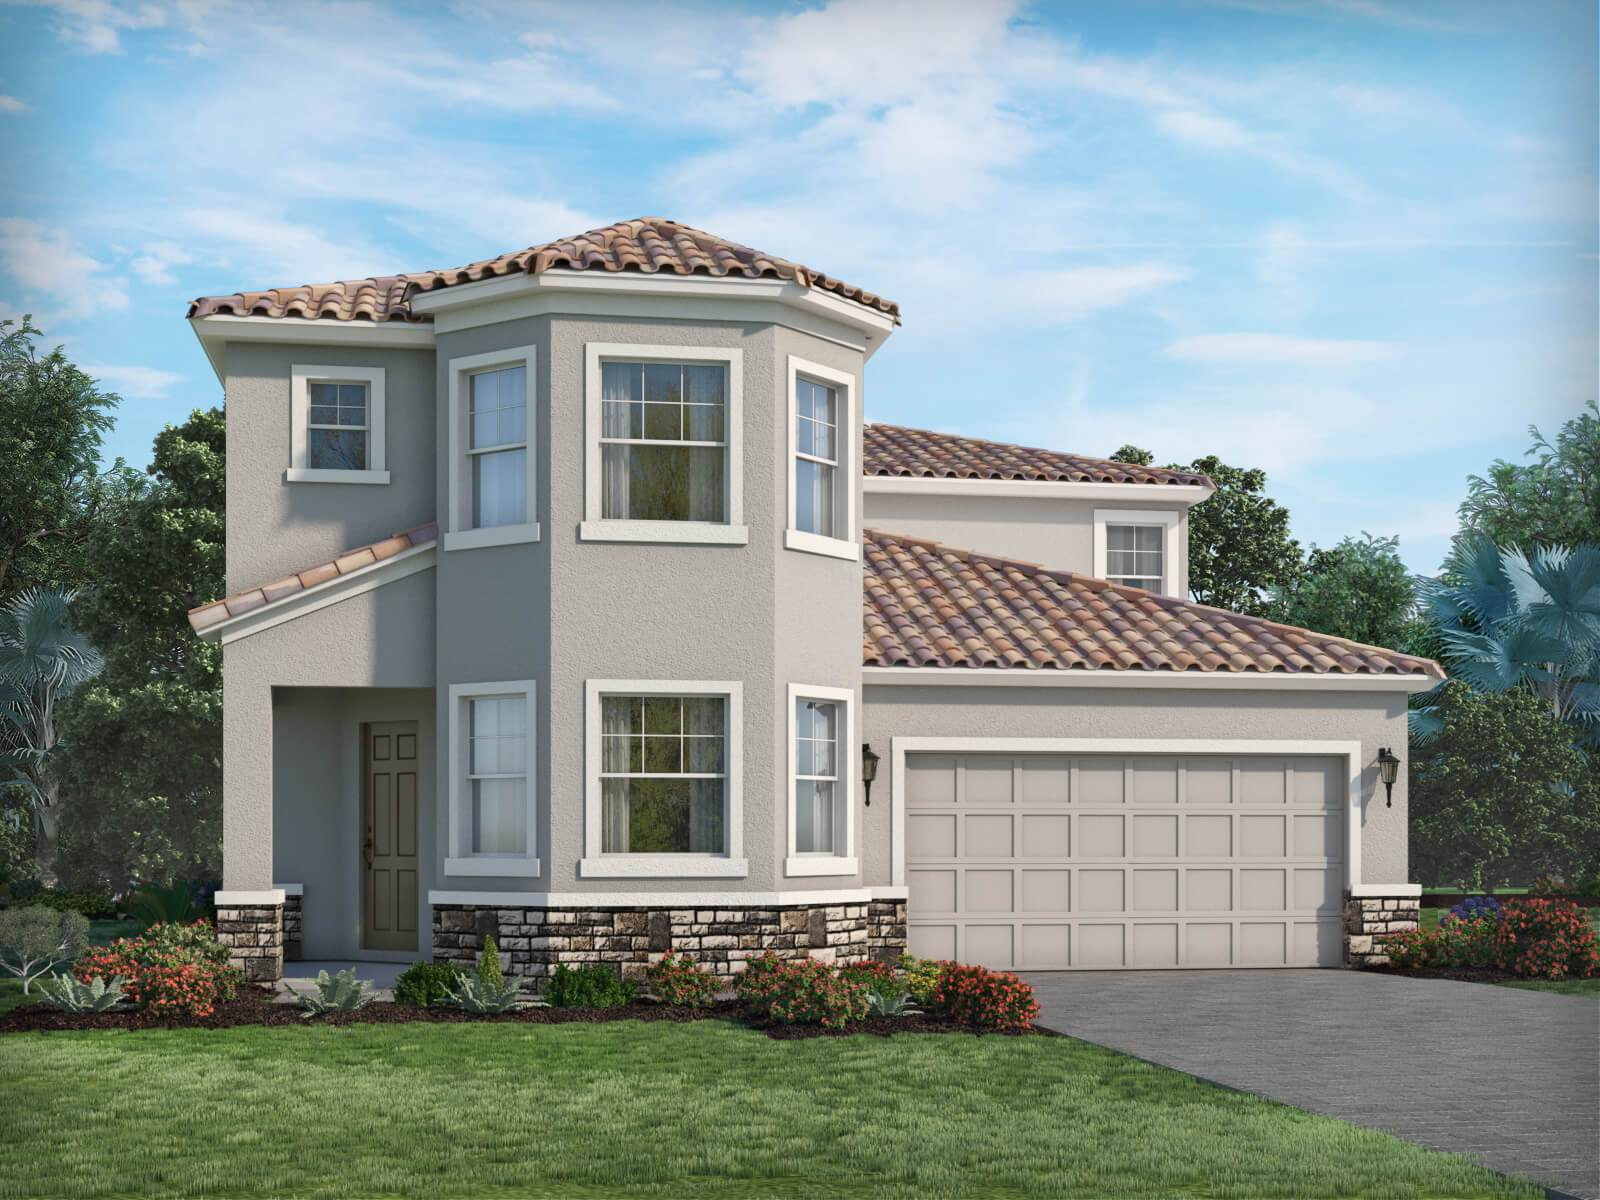 Savanna at Lakewood Ranch - Classic Series in Lakewood Ranch, FL, now available for showing by Anthony Santiago